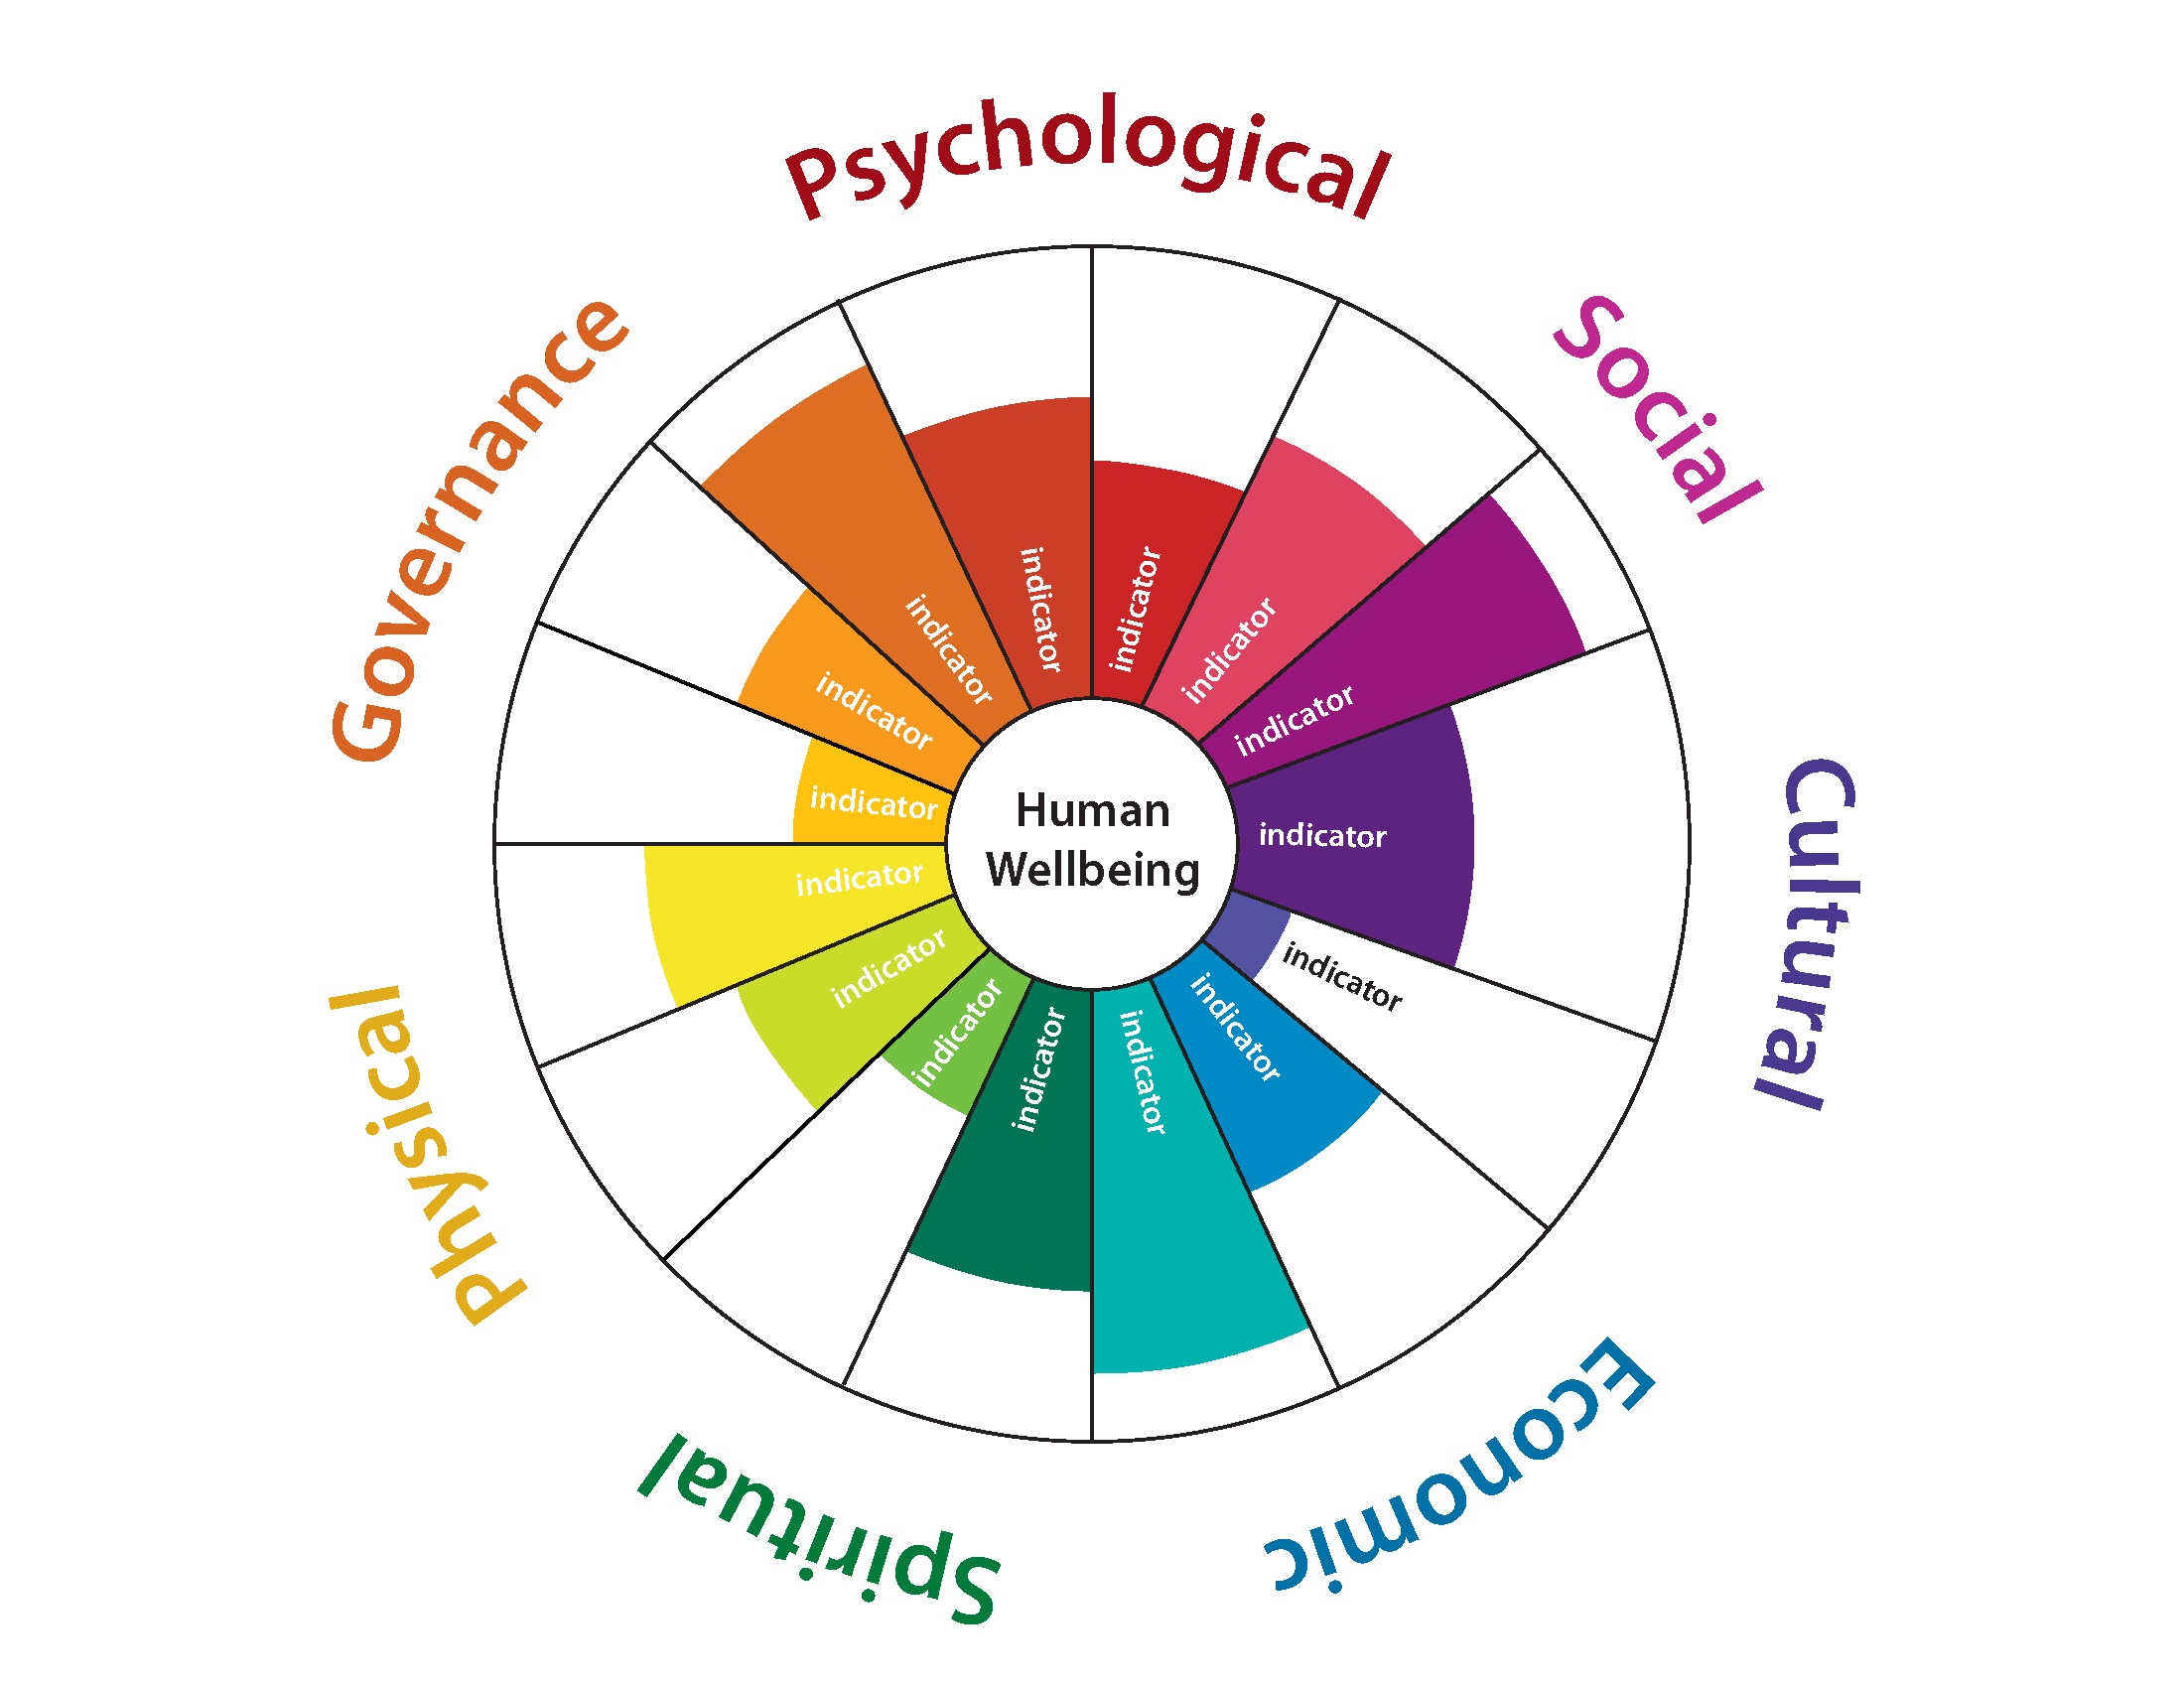 Human wellbeing indicators